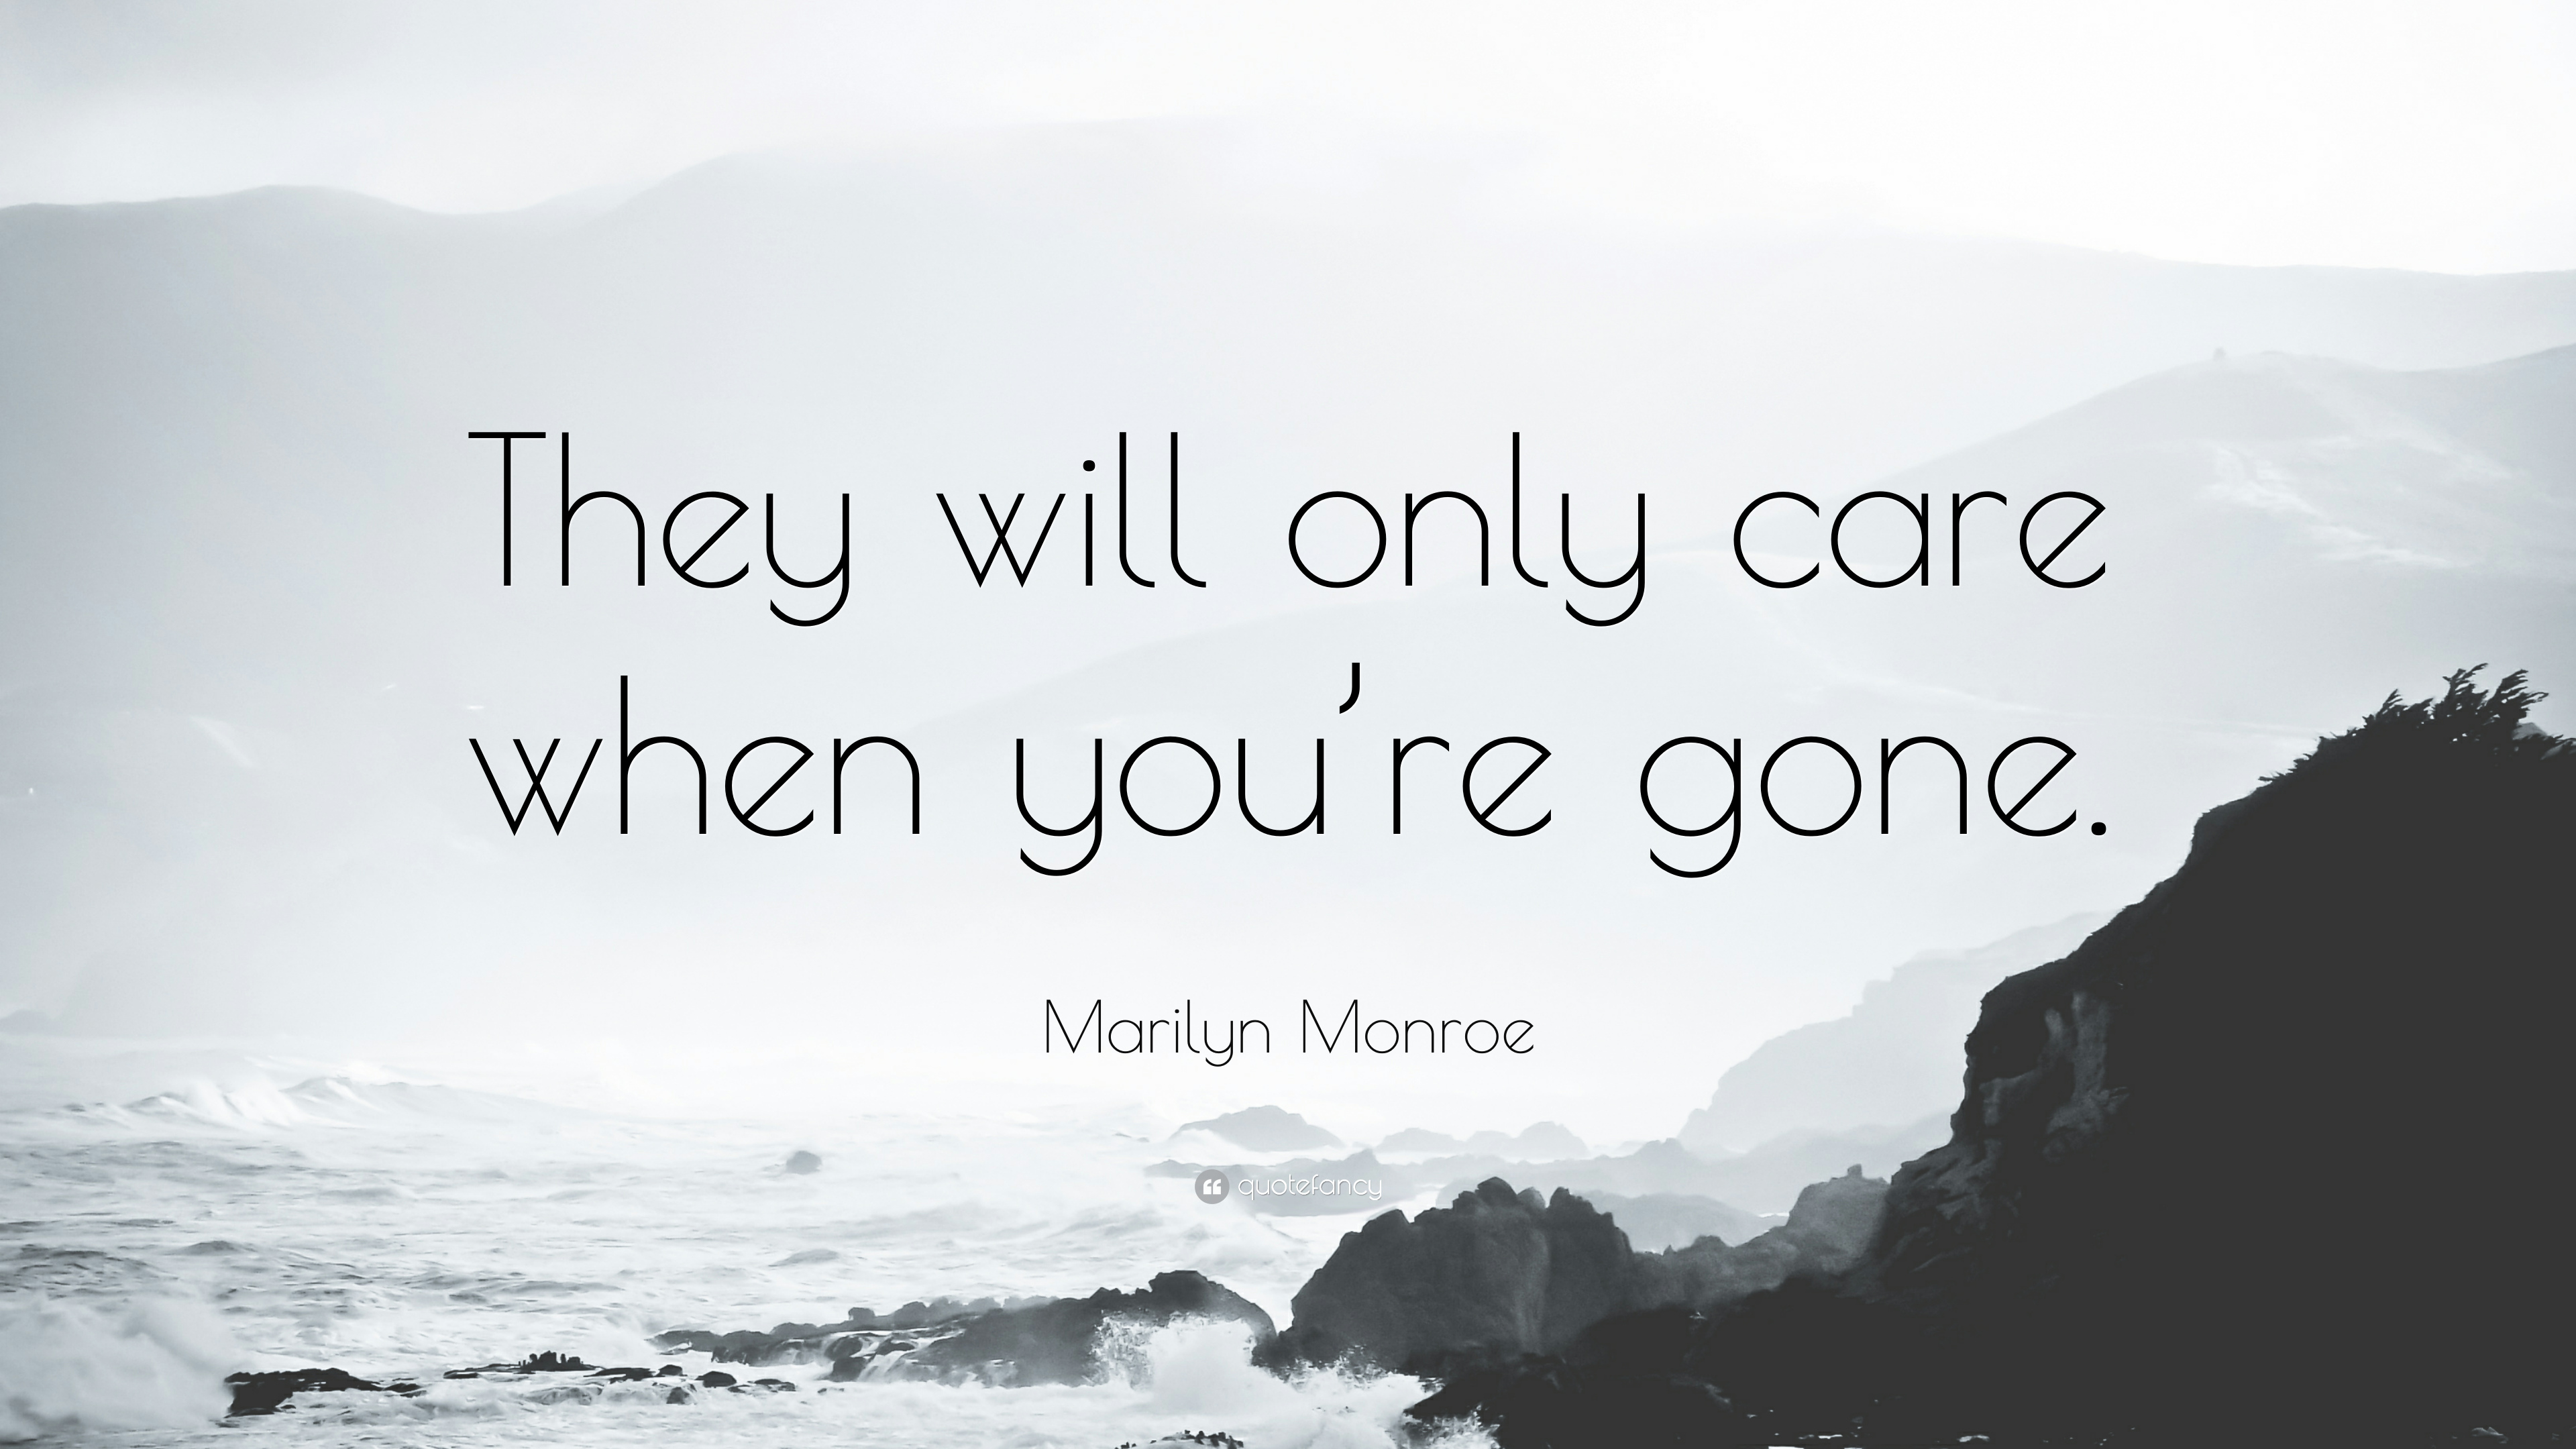 marilyn monroe quote they will only care when youre gone